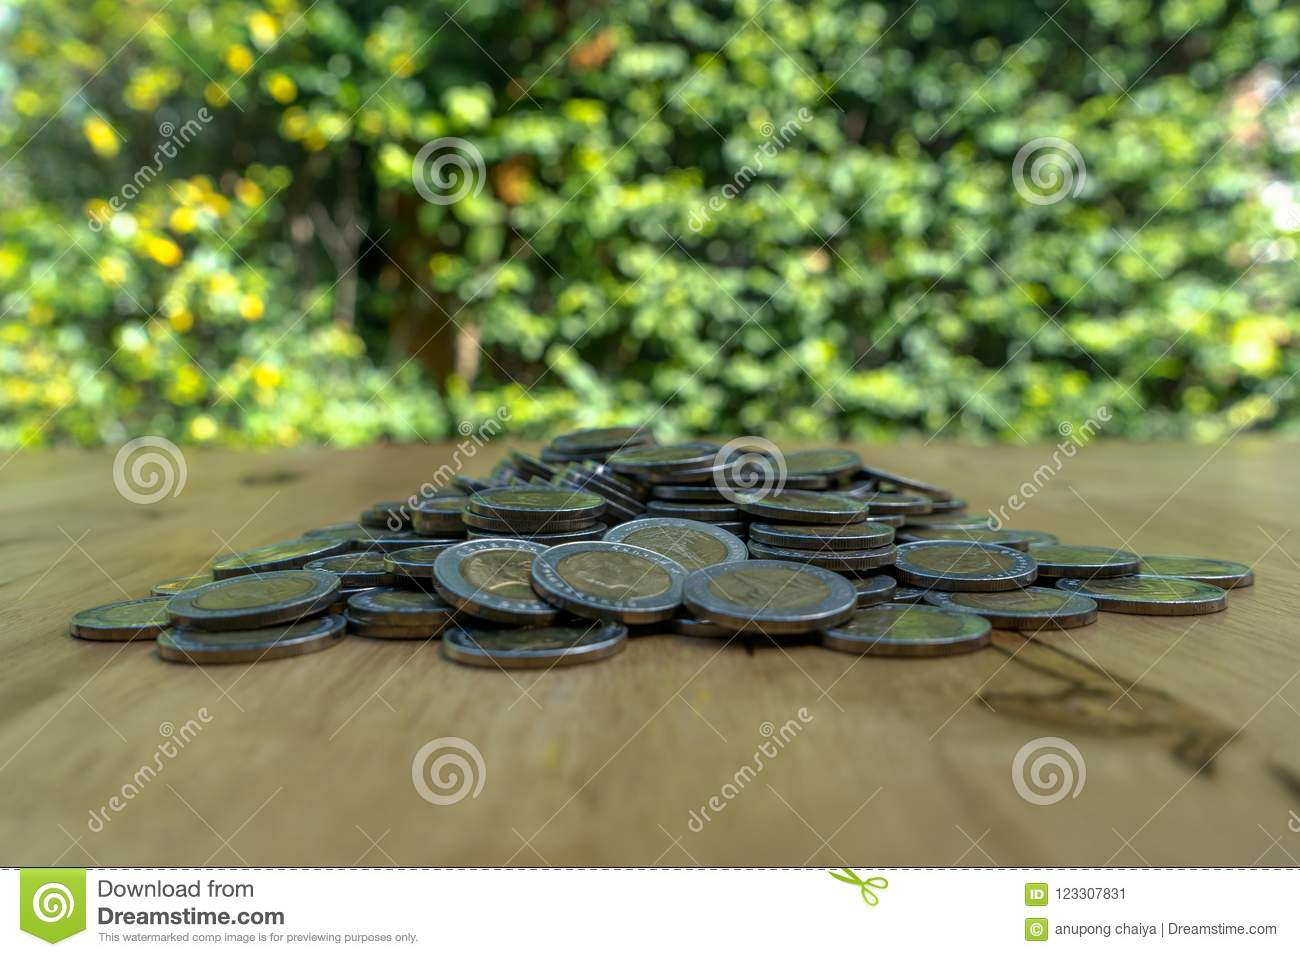 Saving money coins, money concept, coins money collect foe save on green background.